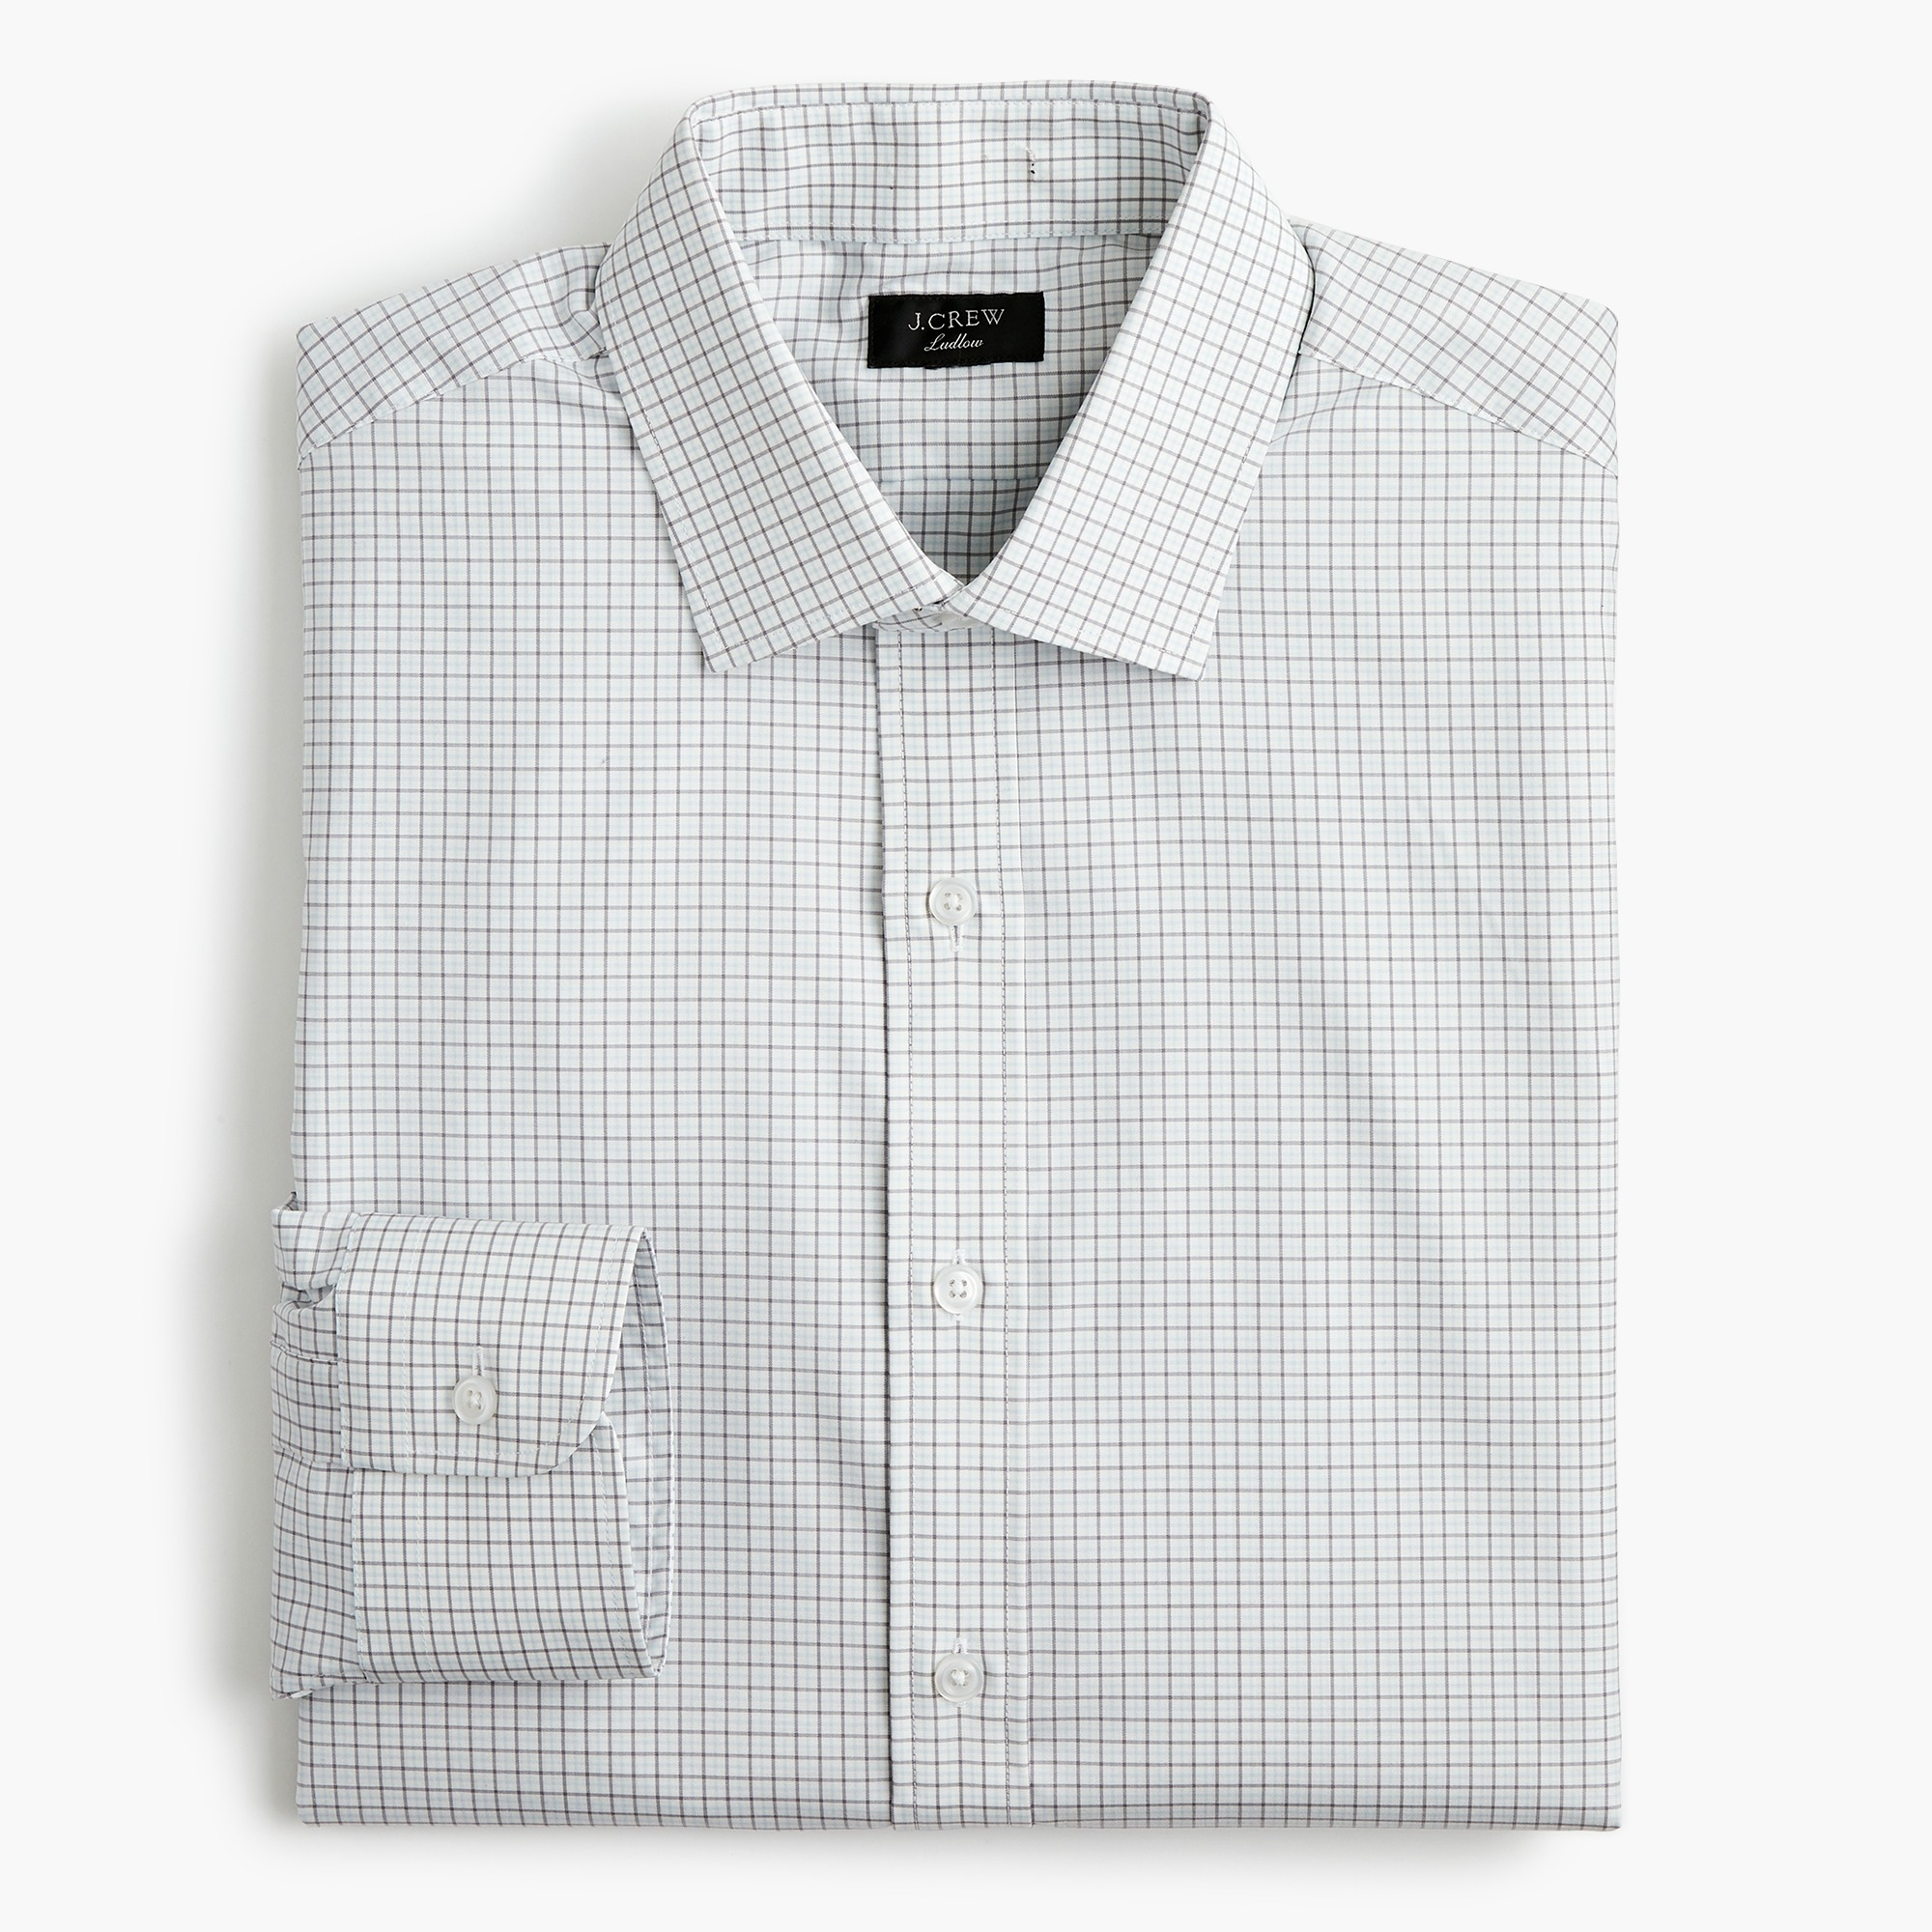 mens Ludlow stretch two-ply easy-care cotton dress shirt in micro-tattersall